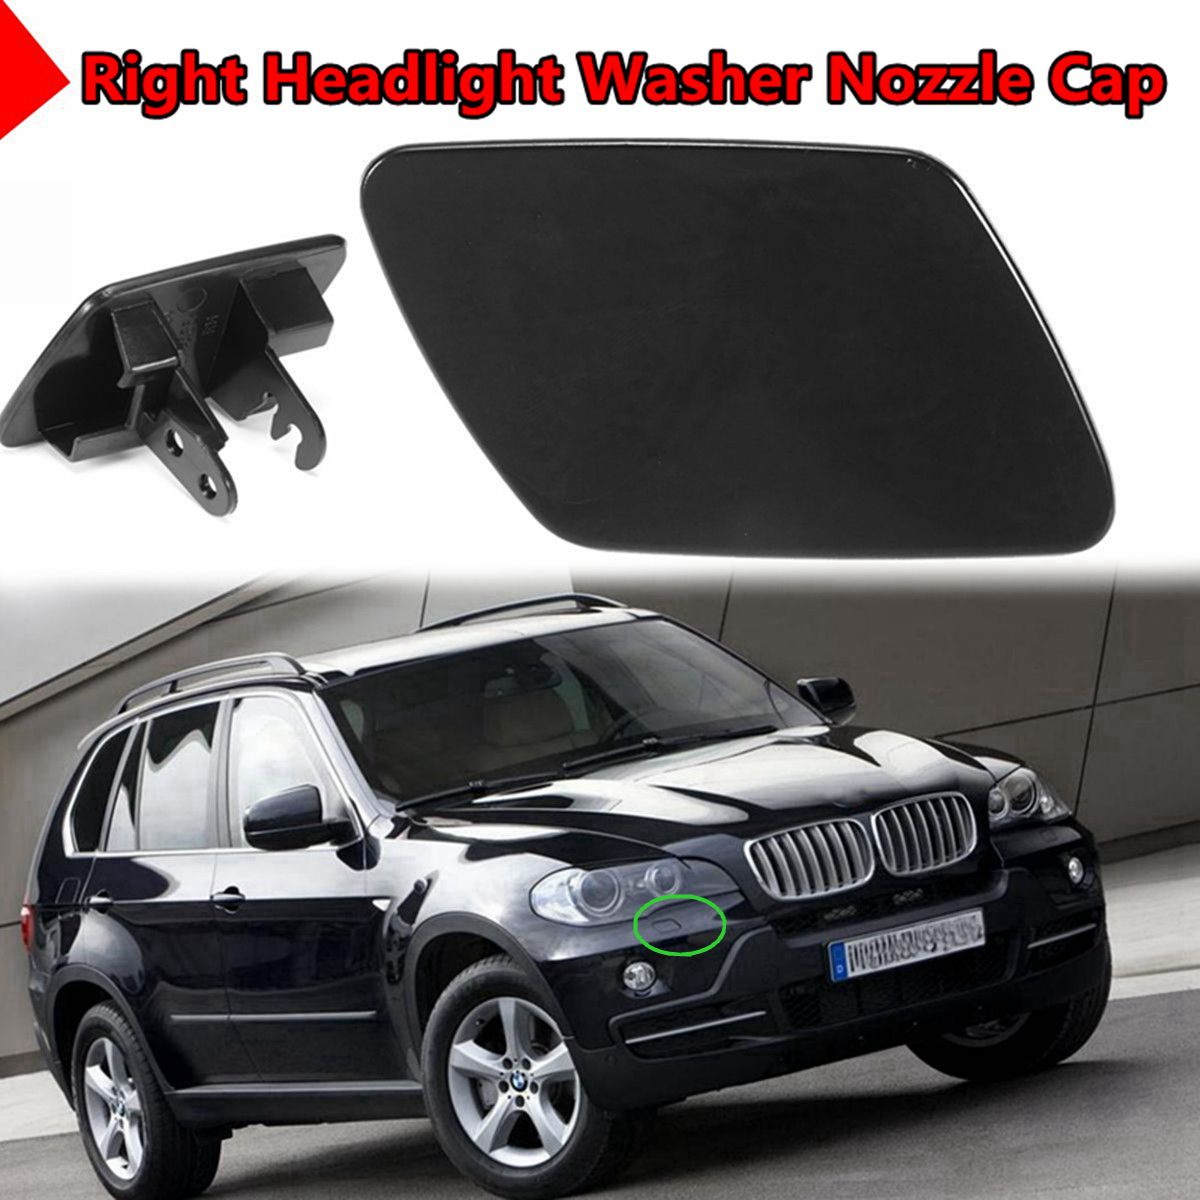 Us 6 84 7 Off 51657199142 Right Side Front Headlight Washer Nozzle Cover Cap For Bmw X5 E70 07 11 Car Replacement In Windscreen Wiper Blow Can